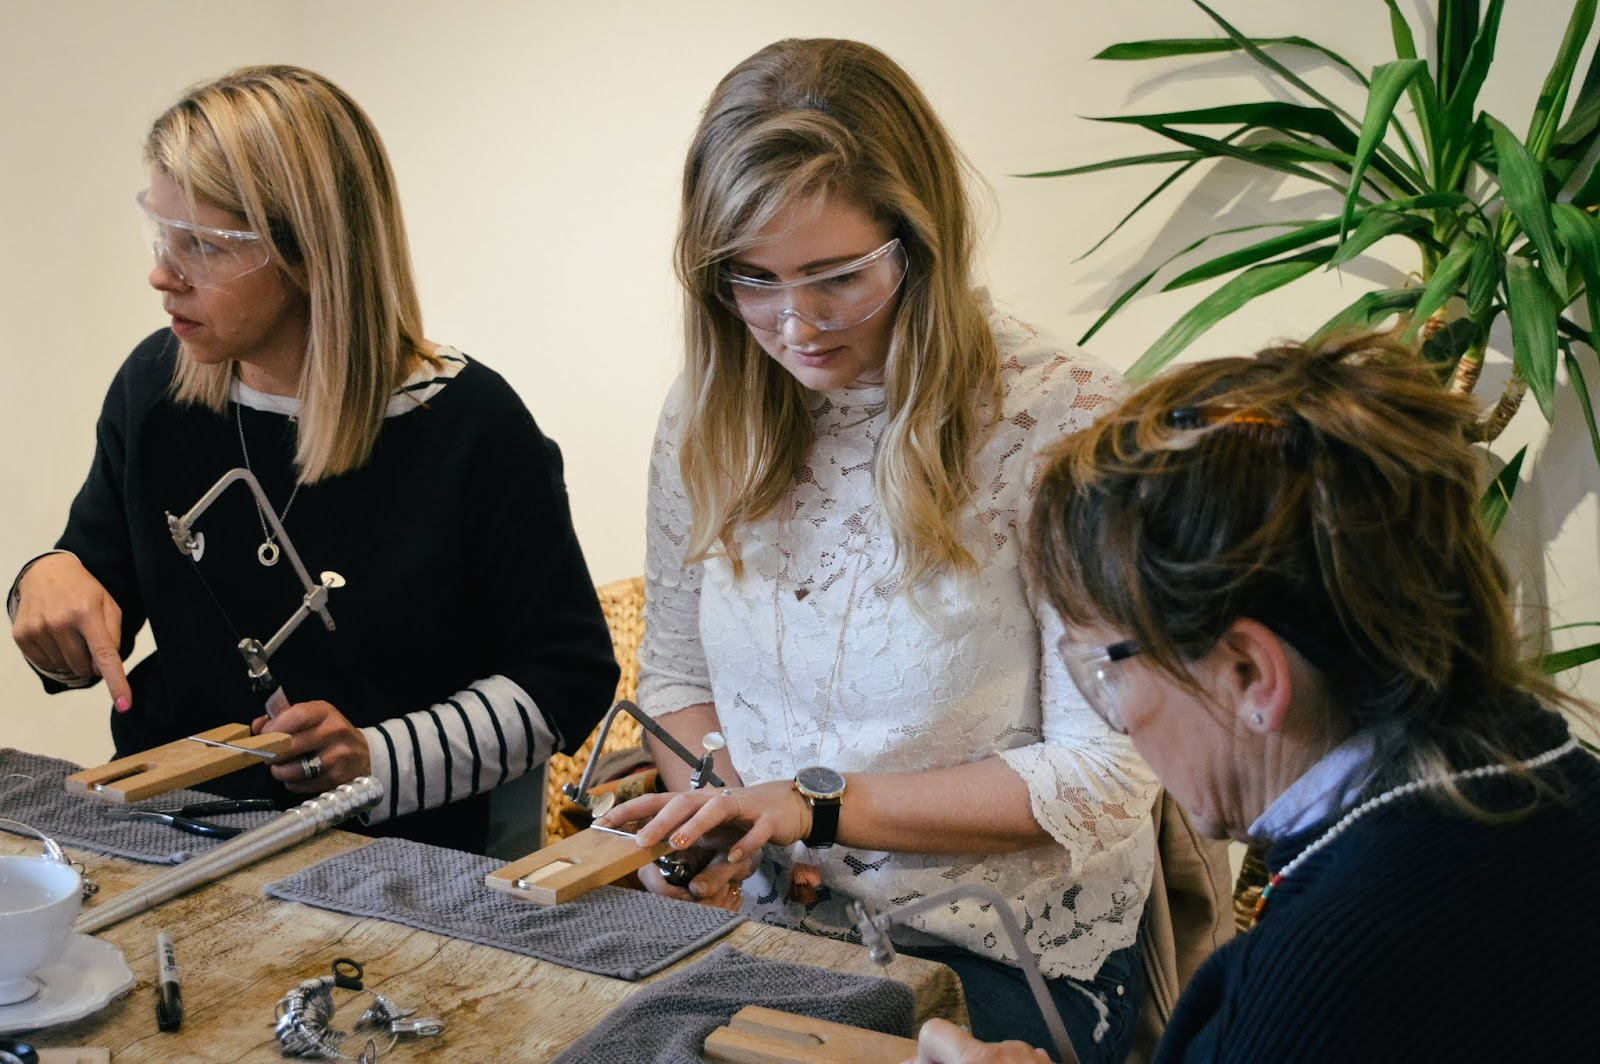 JewelleryMoves Hampshire workshops, jewellery workshops Hampshire, make your own jewellery Hampshire, Hampshire bloggers